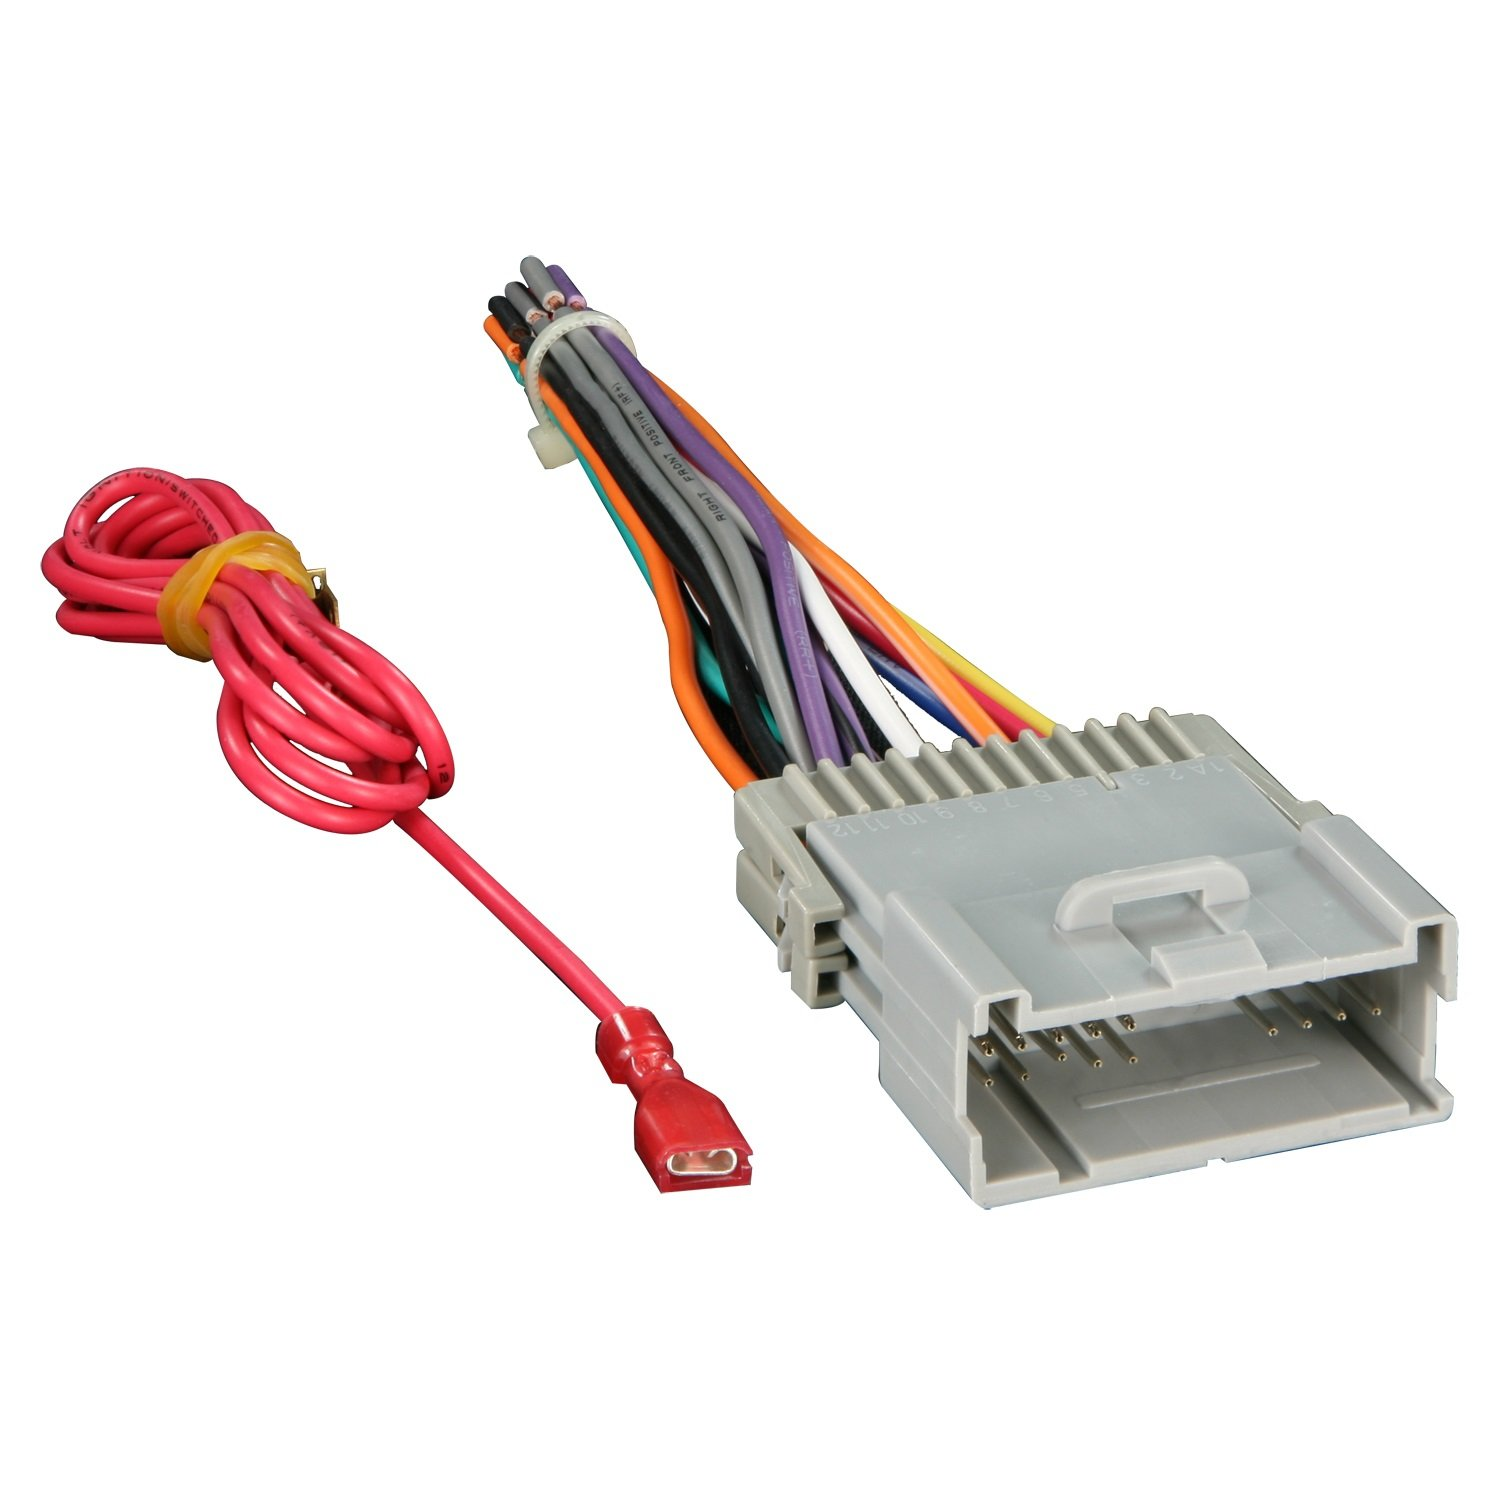 61eewxp9orL._SL1500_ amazon com metra 70 2003 radio wiring harness for gm 98 08 Wire Harness Assembly at virtualis.co